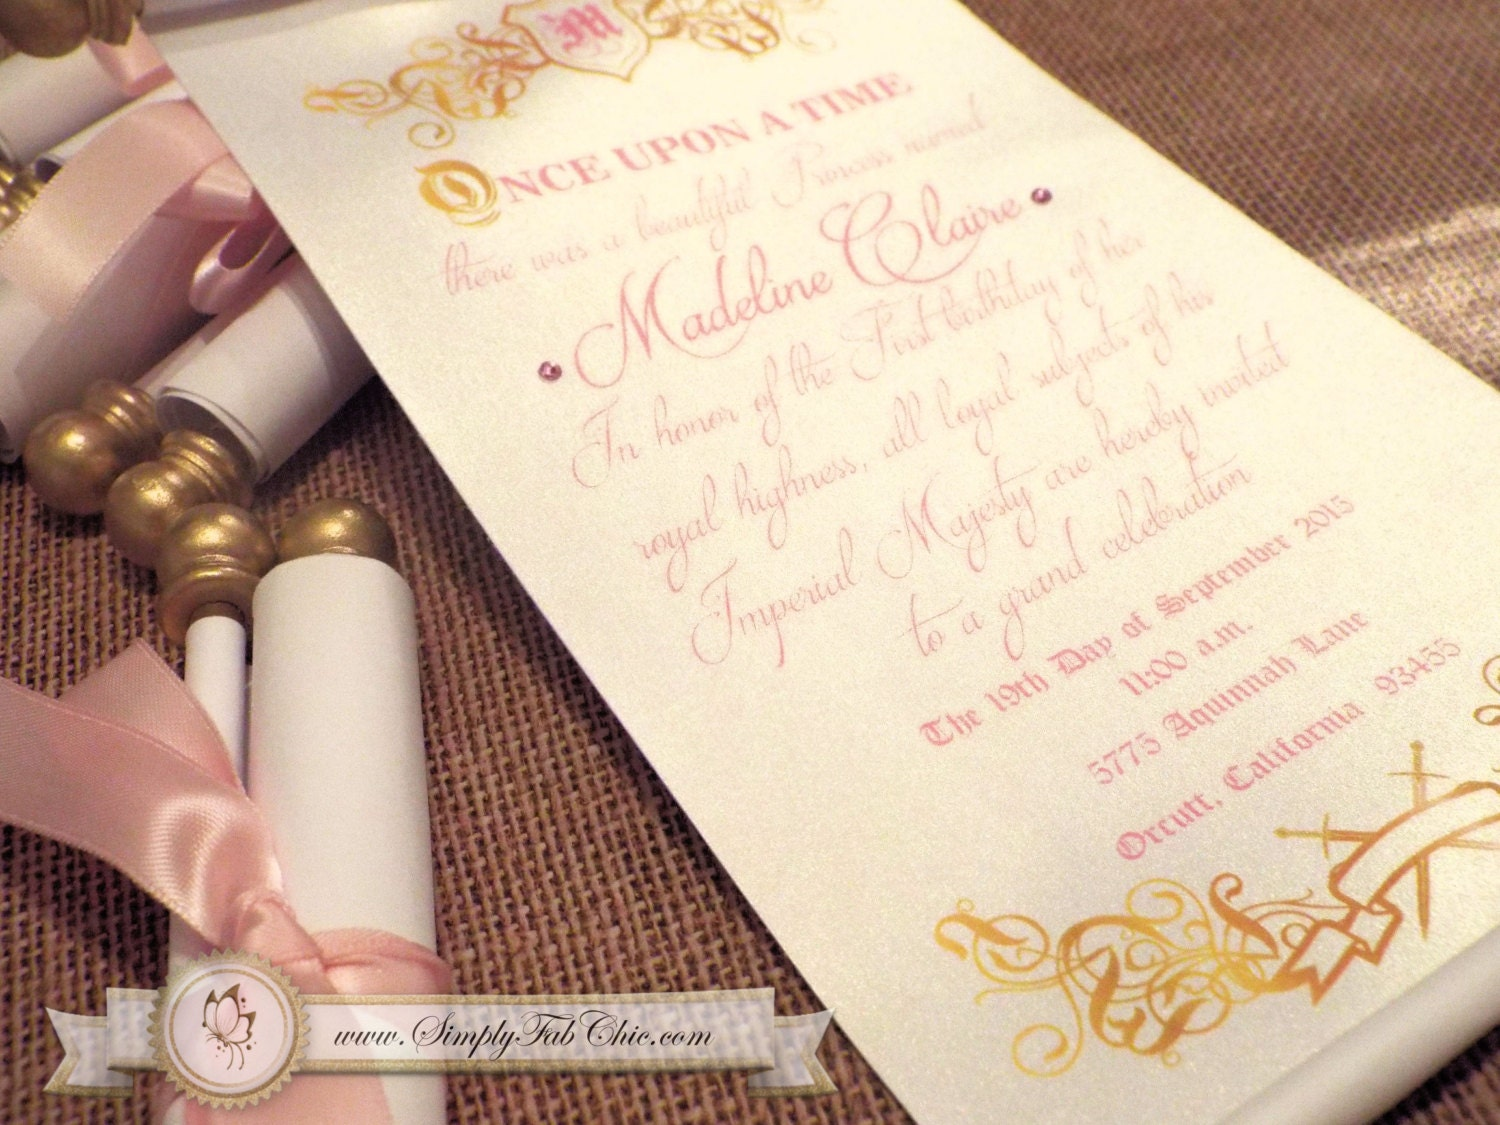 princess scroll wedding invitations - 28 images - simply fab chic ...